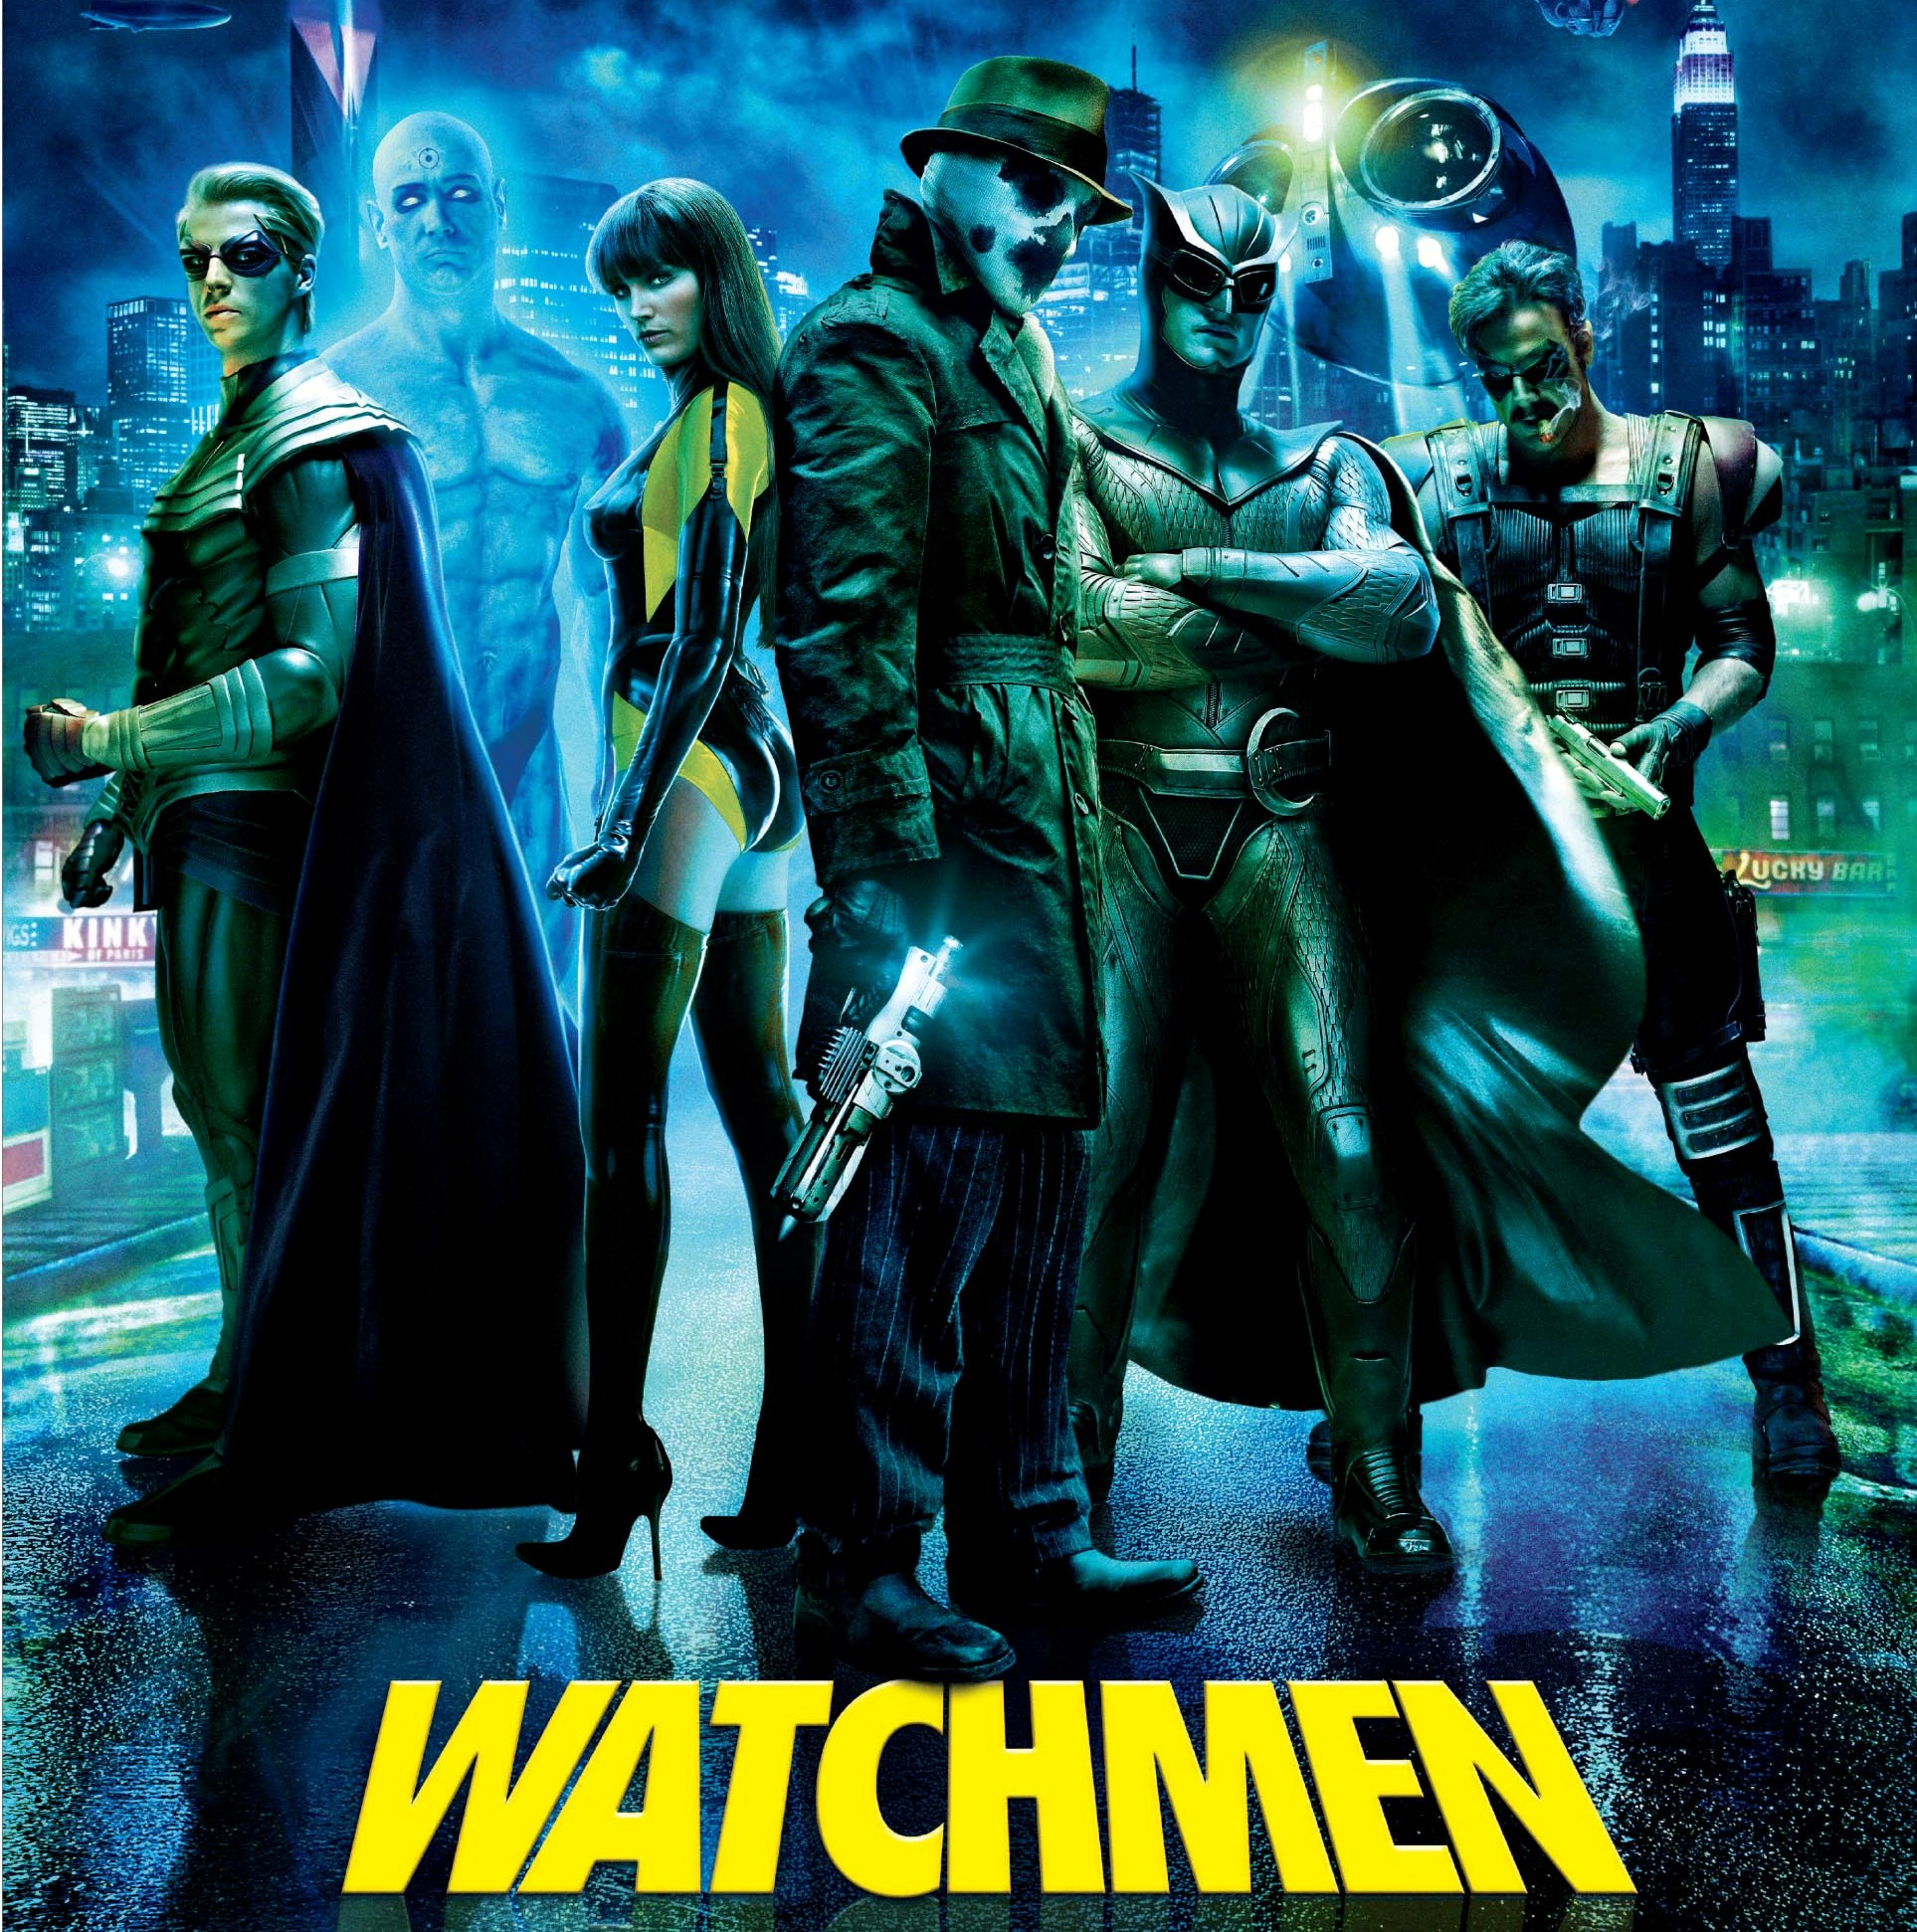 Rorschach Watchmen Wallpaper Hd The Dave Gibbons Interviews Watching The Watchmen In Book